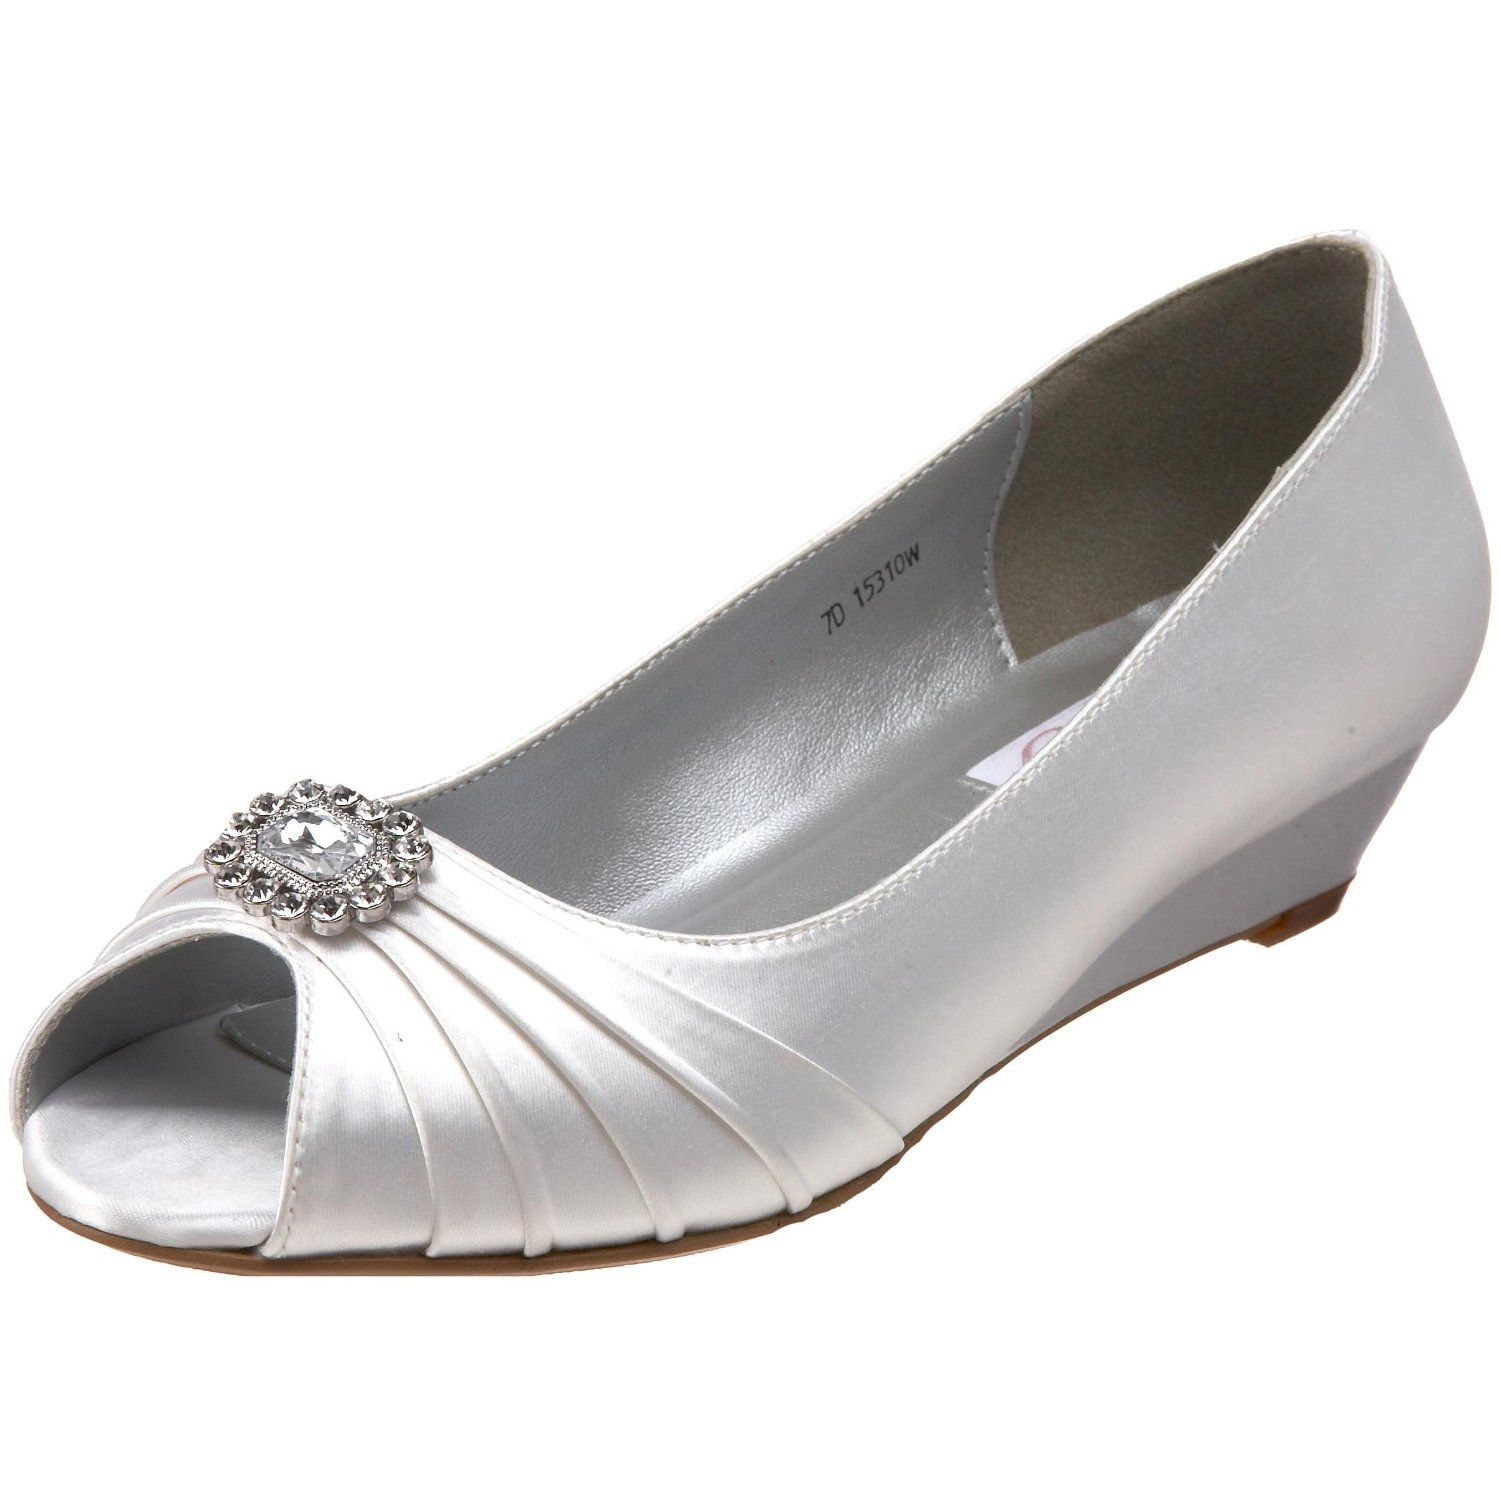 cute for low heels Dyeable wedding shoes, Low heel